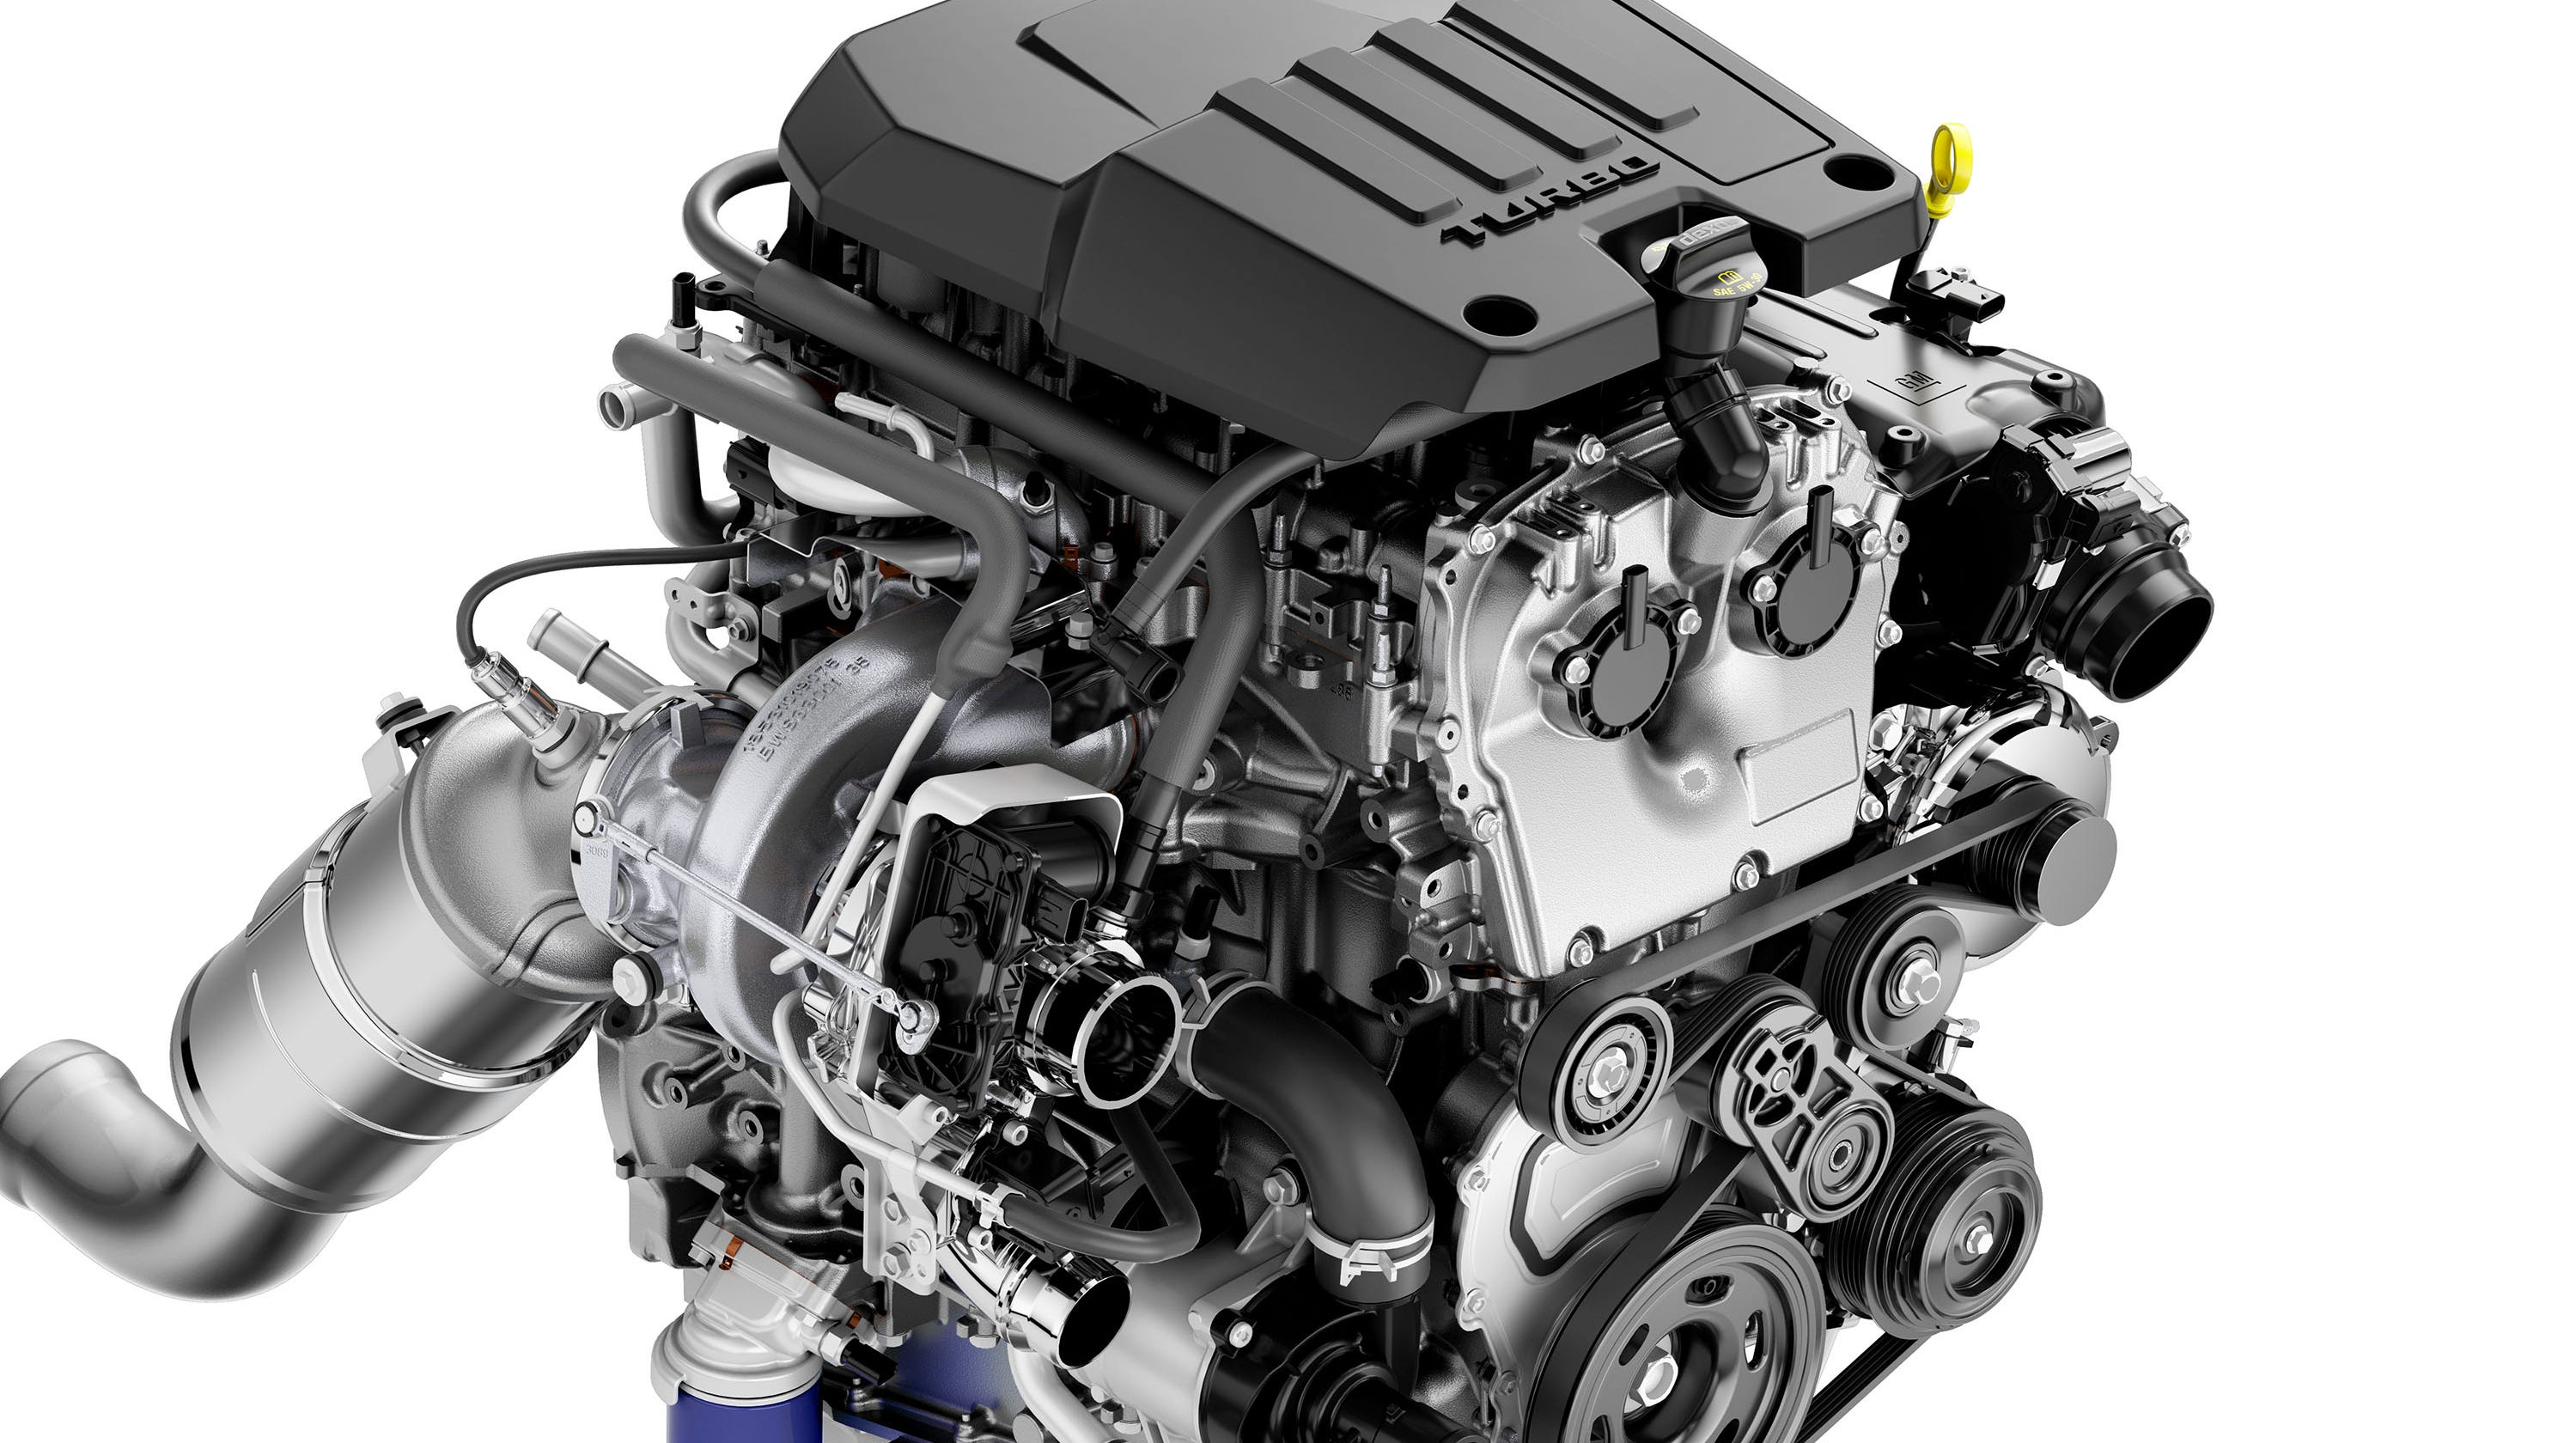 New turbo engine boosts 2019 Chevy Silverado's fuel economy